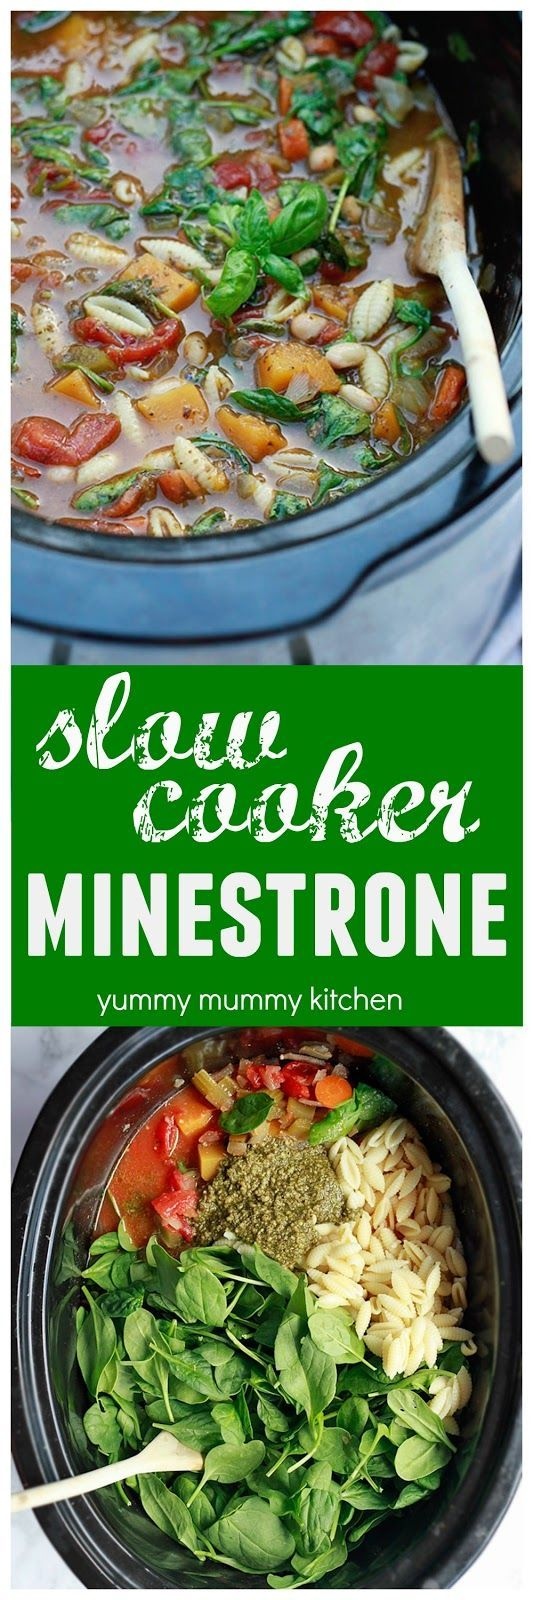 slow cooker vegetarian minestrone soup is an easy healthy recipe the whole family will love